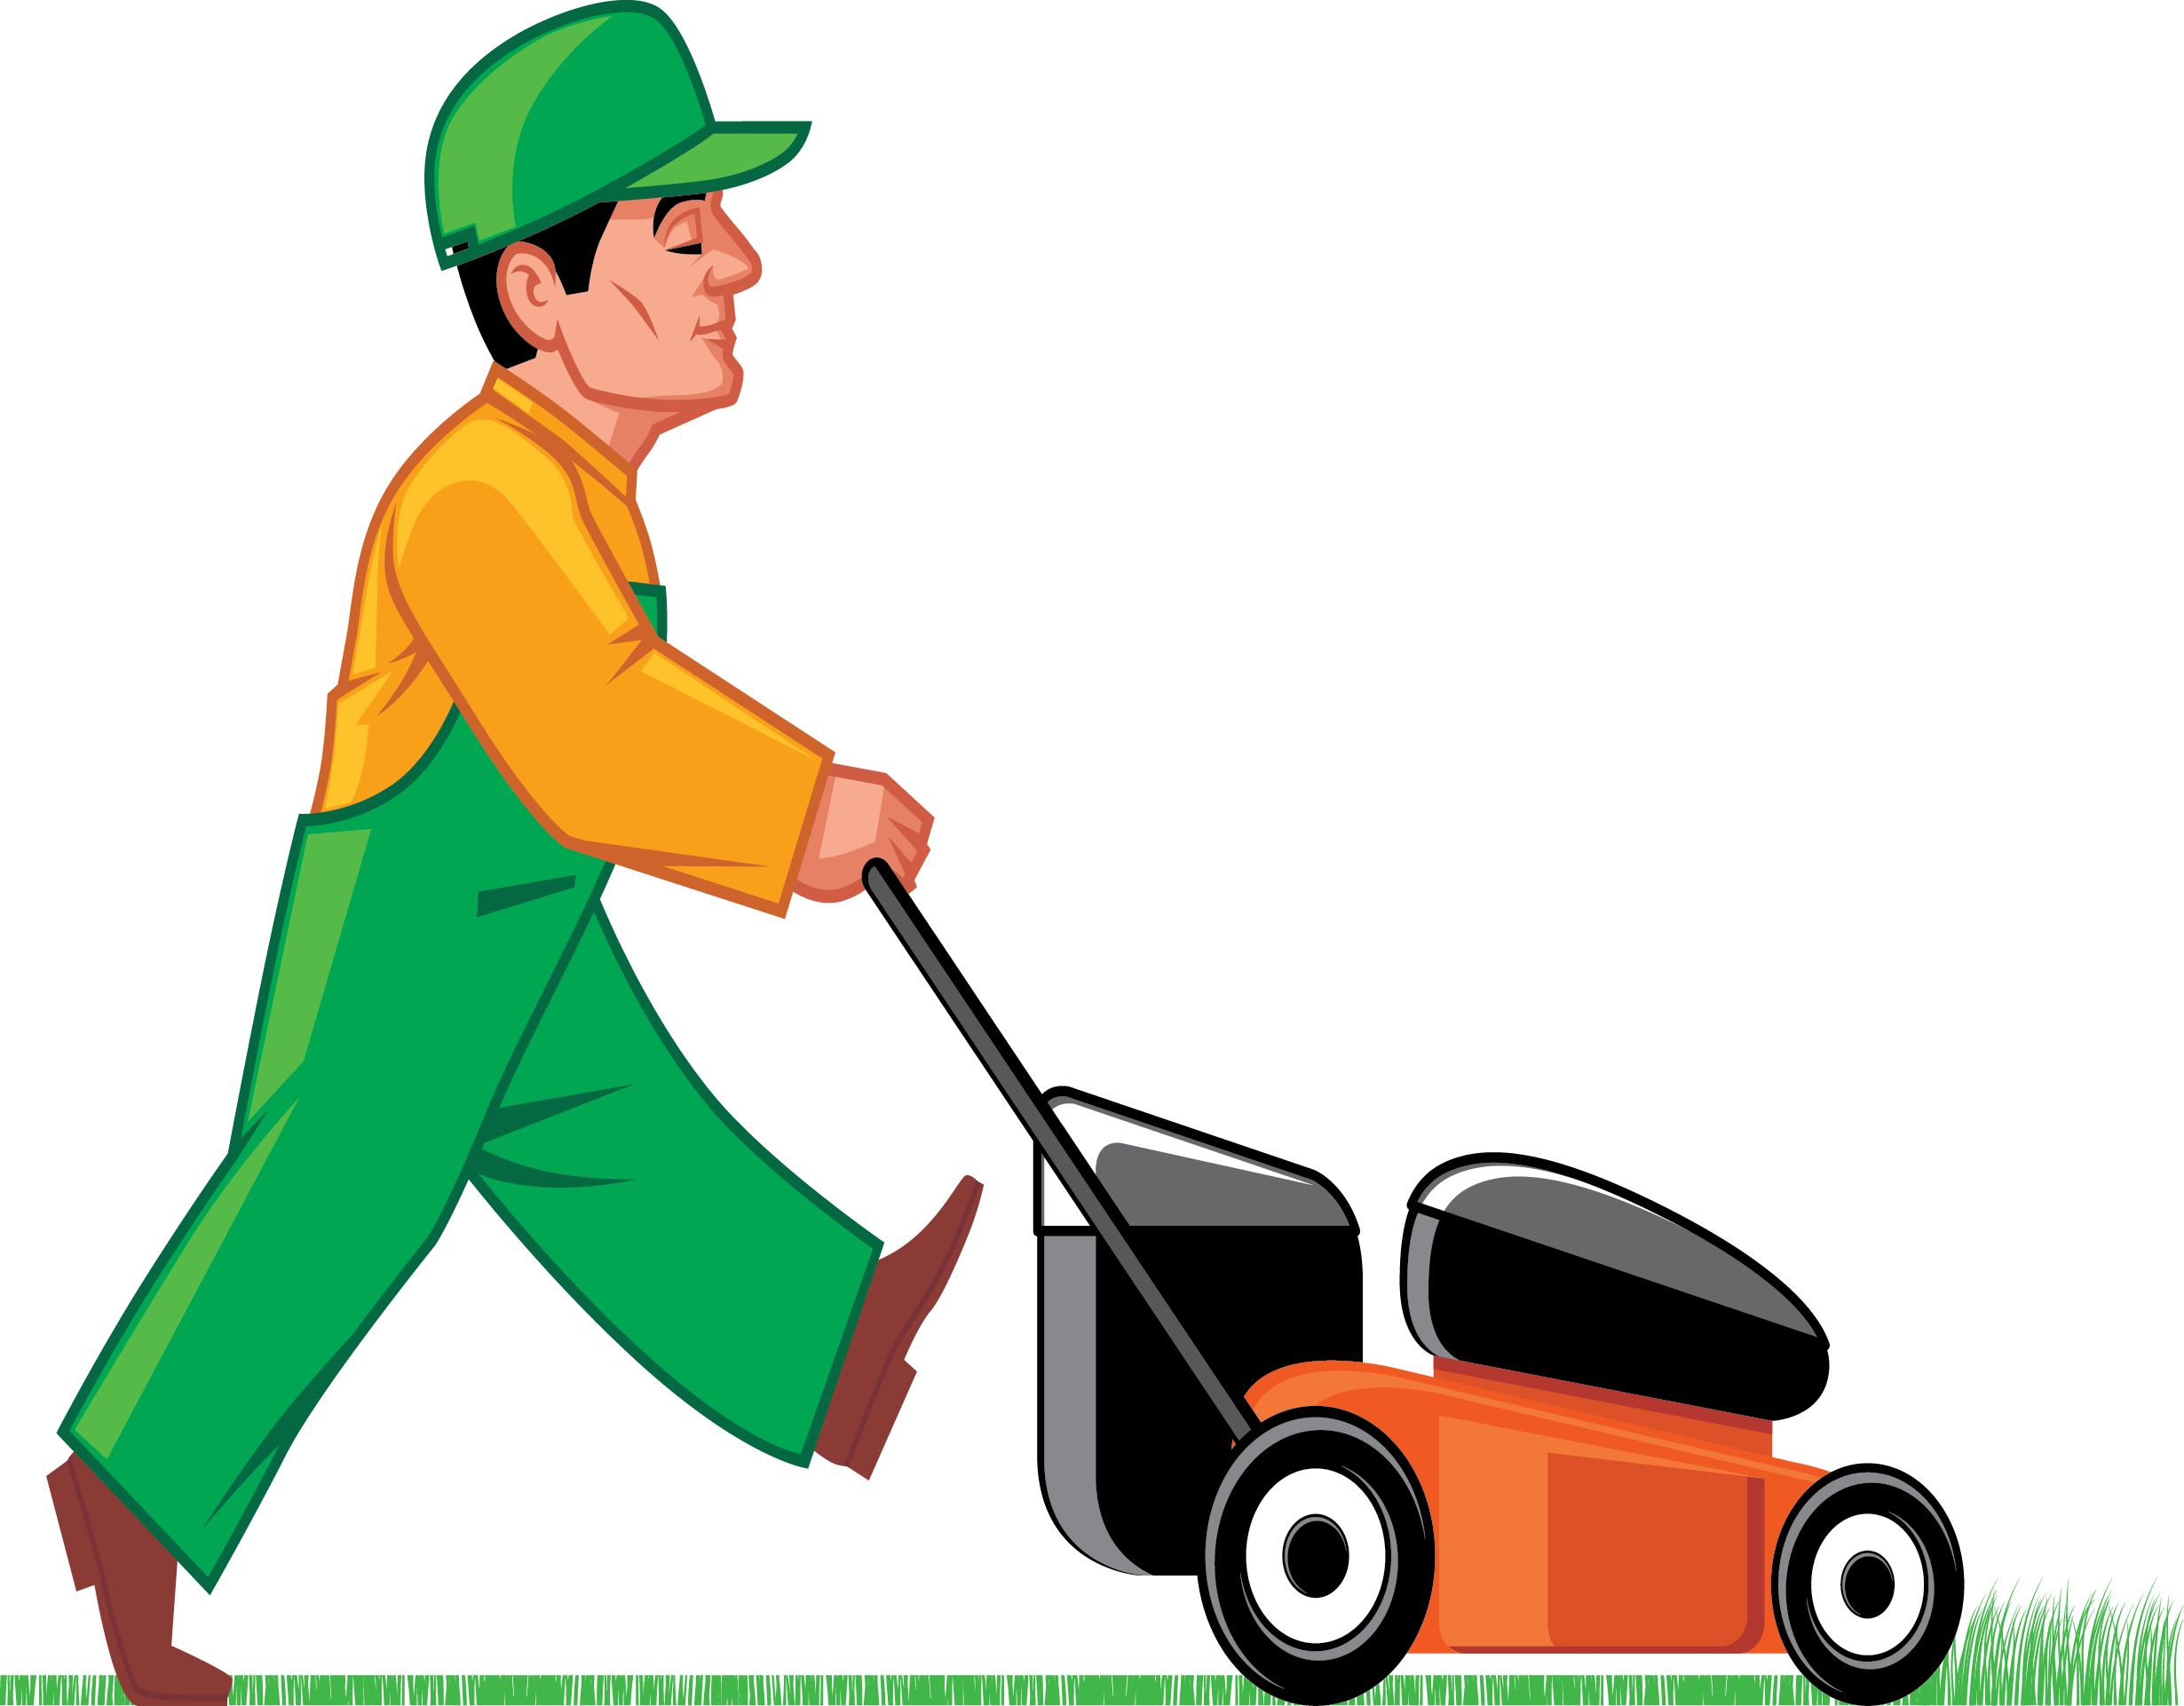 In case you do. Clipart grass cut out